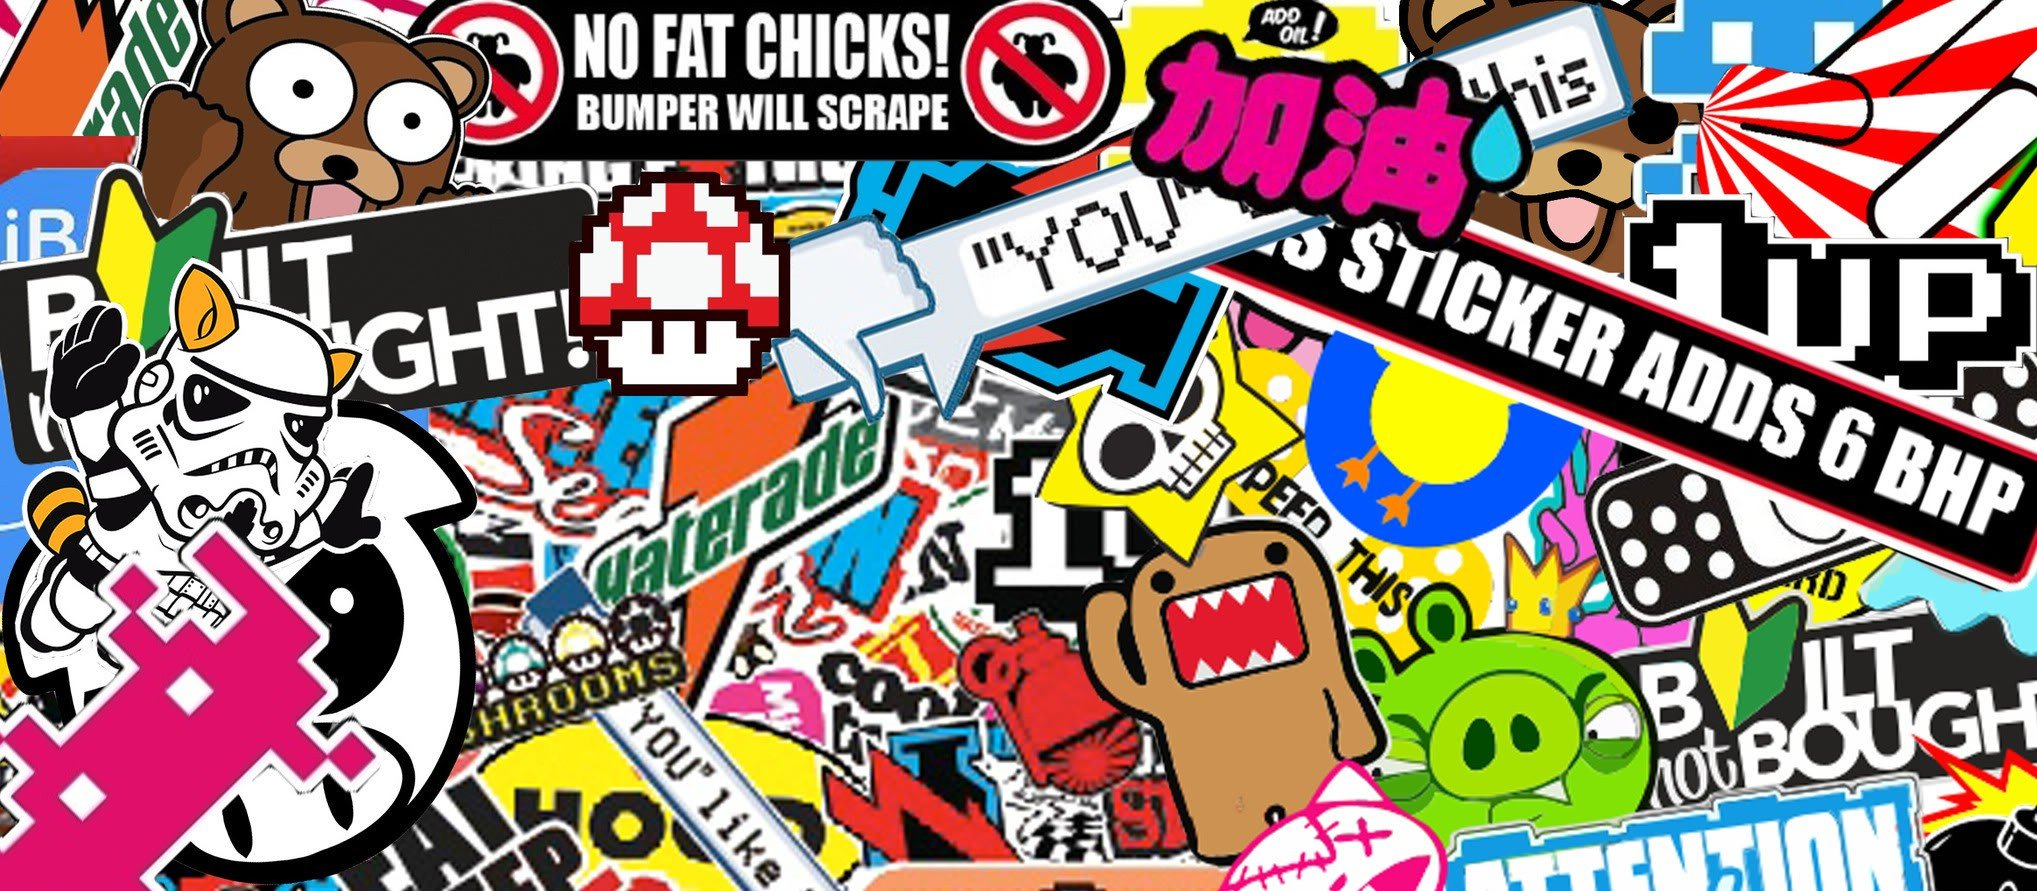 Sticker bomb sticks bomb hd wallpapers desktop and mobile images photos